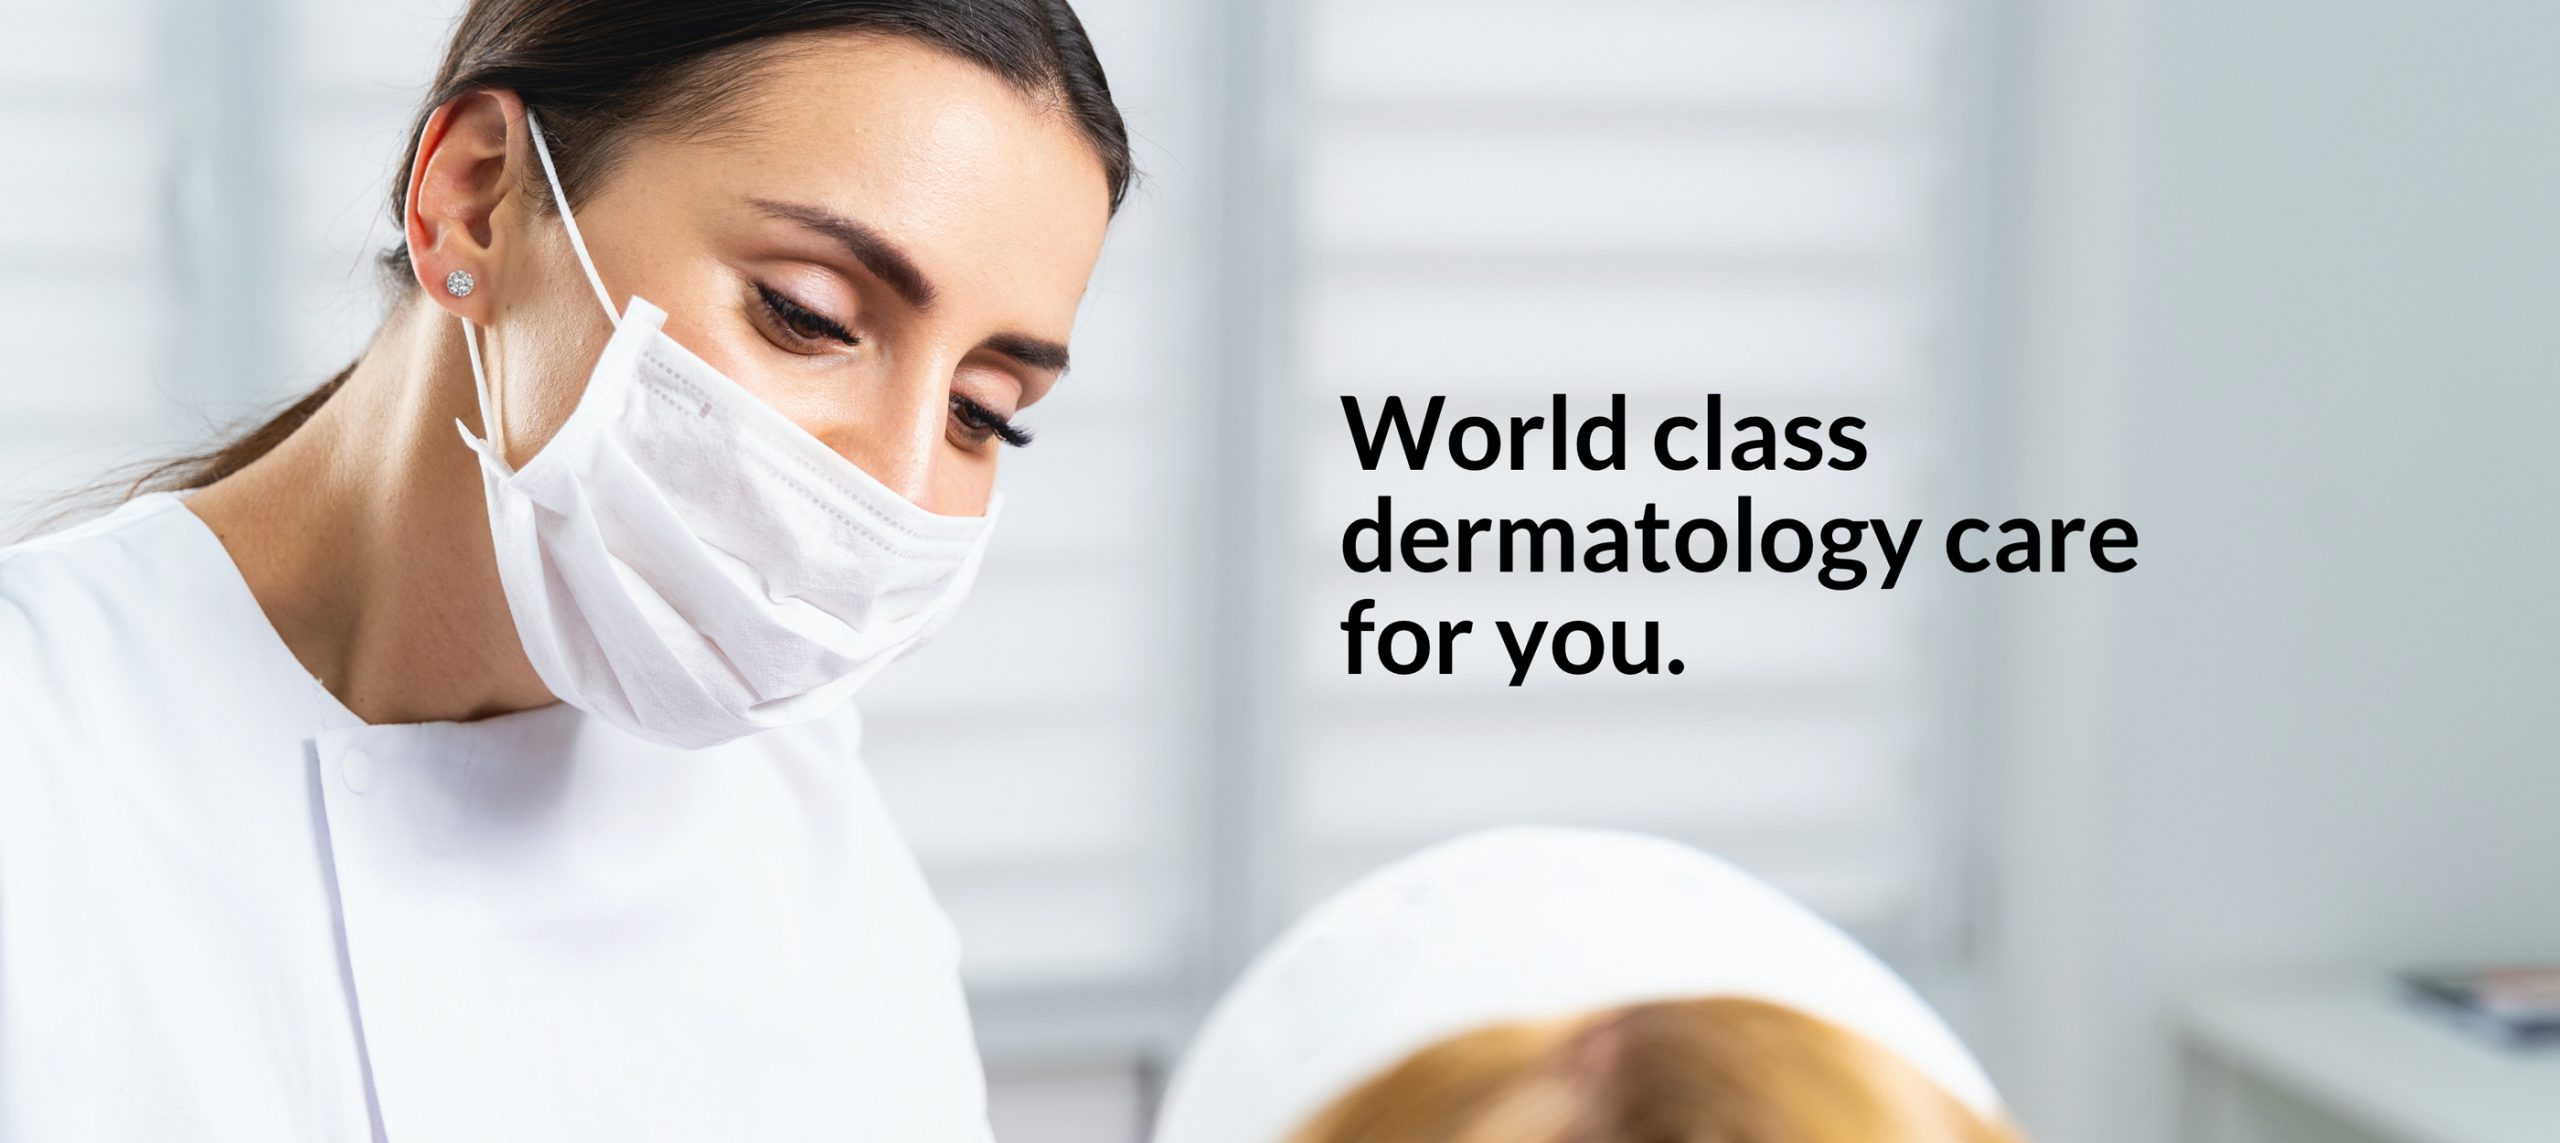 World class dermatology care for you